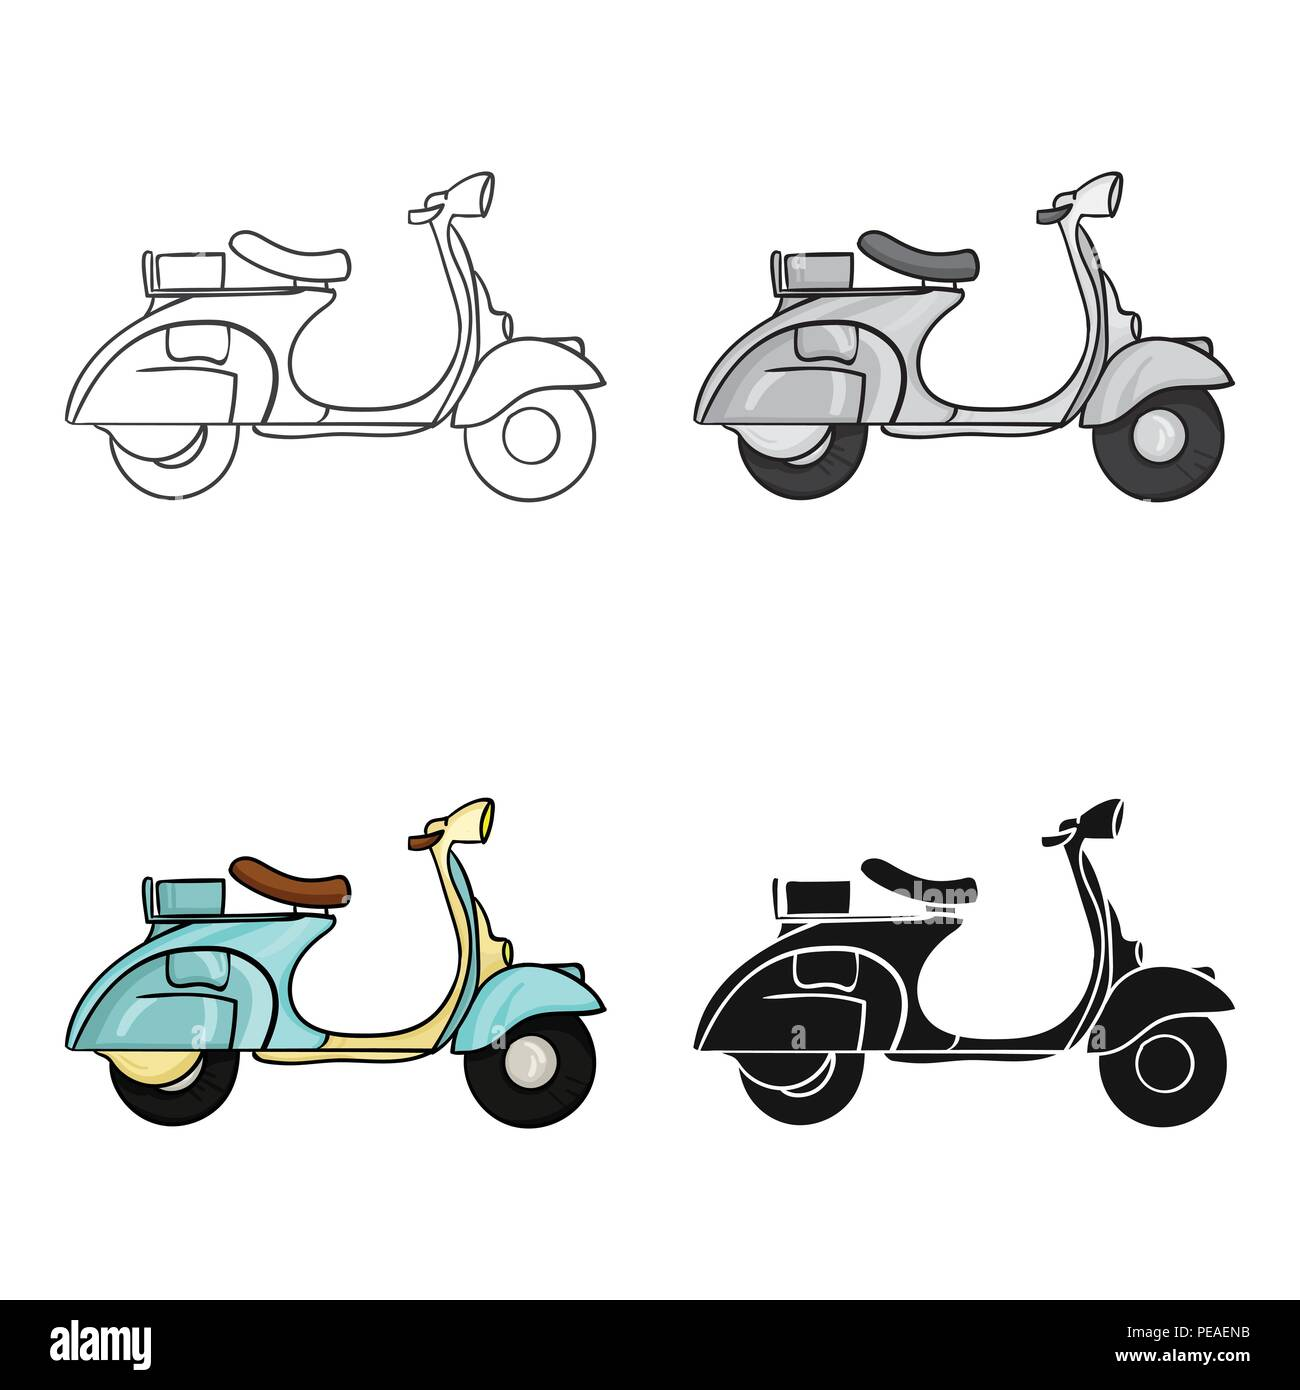 Art Background Bike Cartoon Classic Country Design Hipster Icon Illustration Isolated Italian Italy Logo Motor Motorcycle Old Retro Ride Road Scooter Speed Style Symbol Transport Transportation Travel Urban Vector Vehicle Vespa Vintage Web Wheel